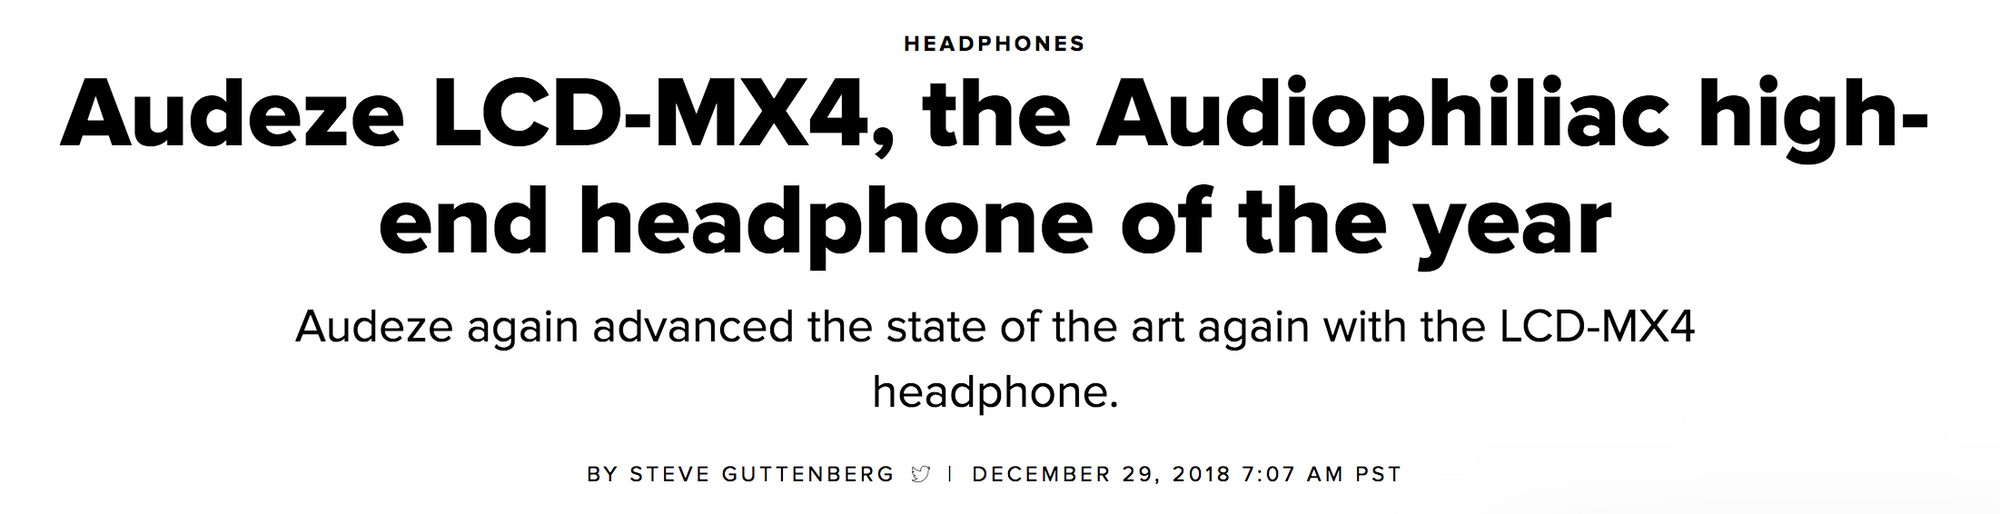 Audeze LCD-MX4 Review; Steve Guttenberg, CNET